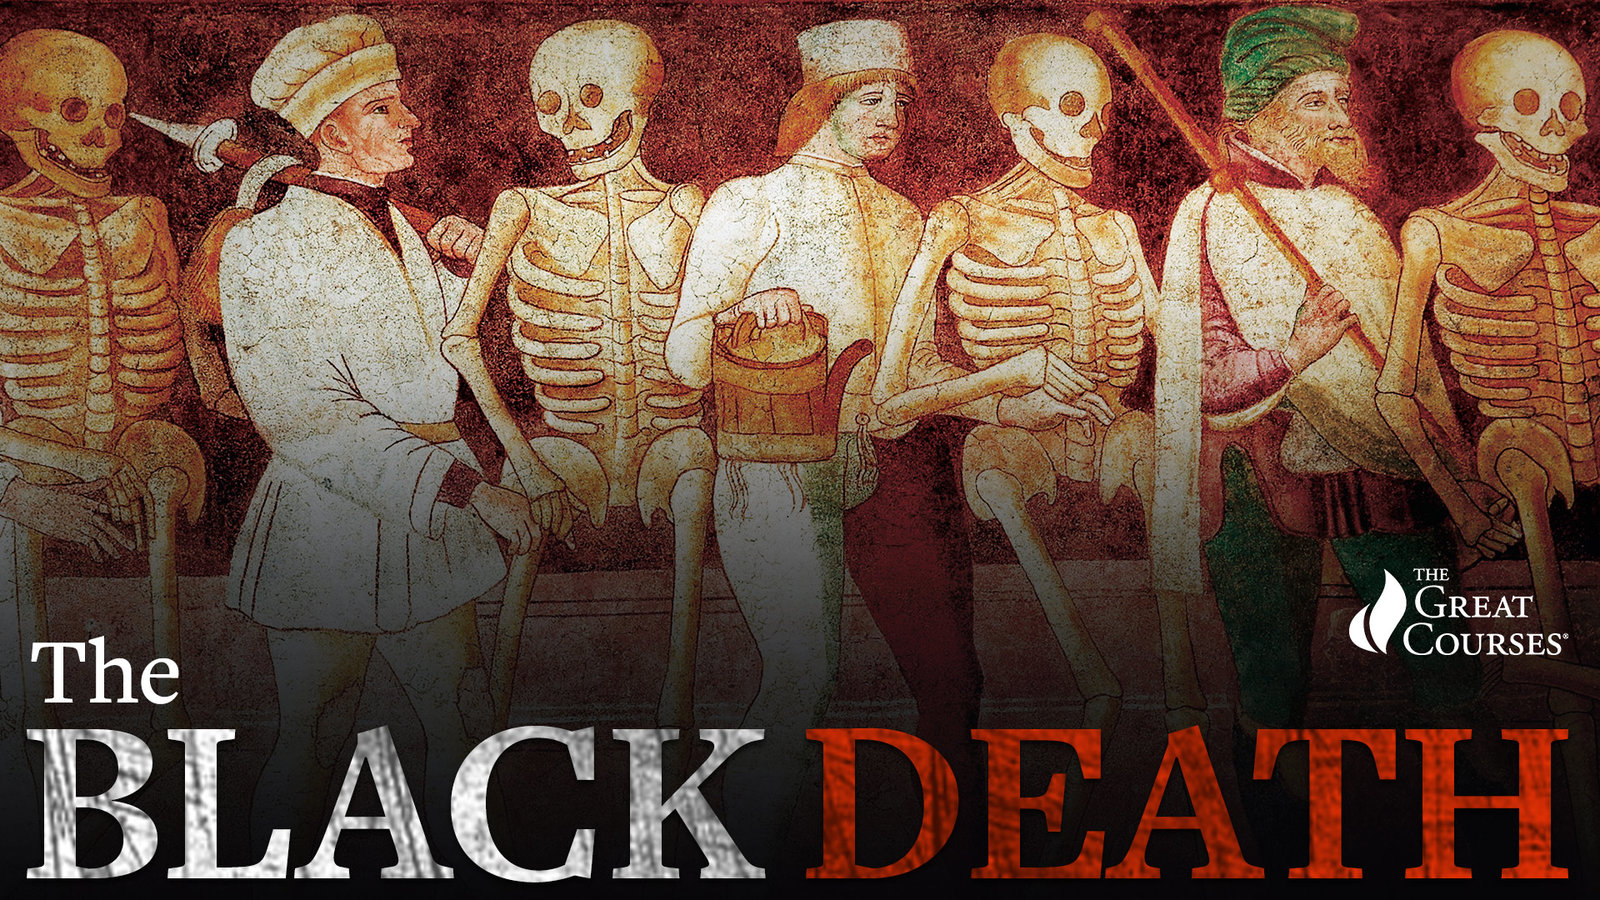 The Black Death - The World's Most Devastating Plague